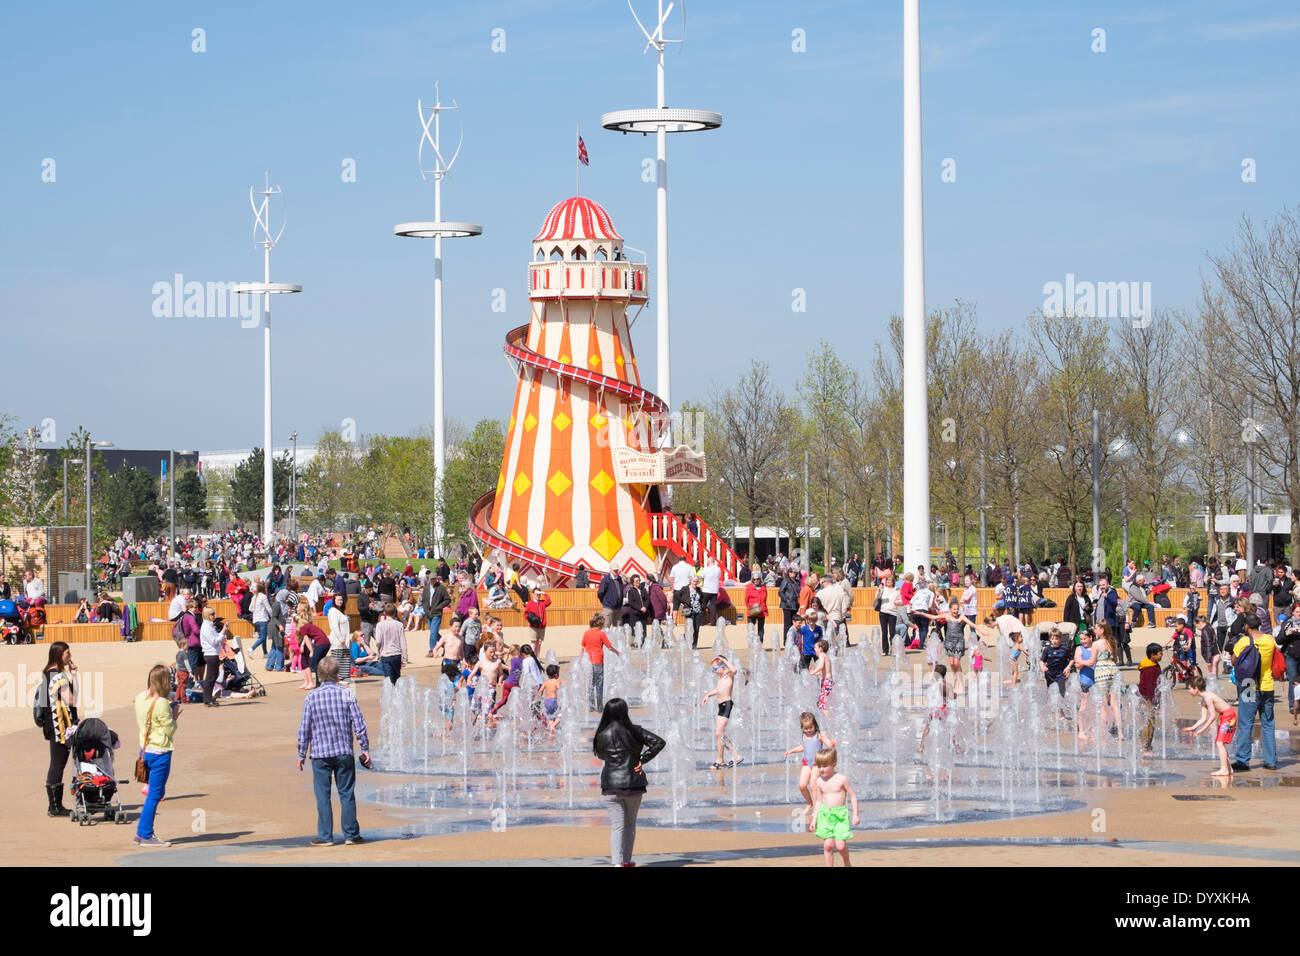 Helter Skelter Funfair And Fountain With Many Visitors At Queen Elizabeth Olympic Park In Stratford London